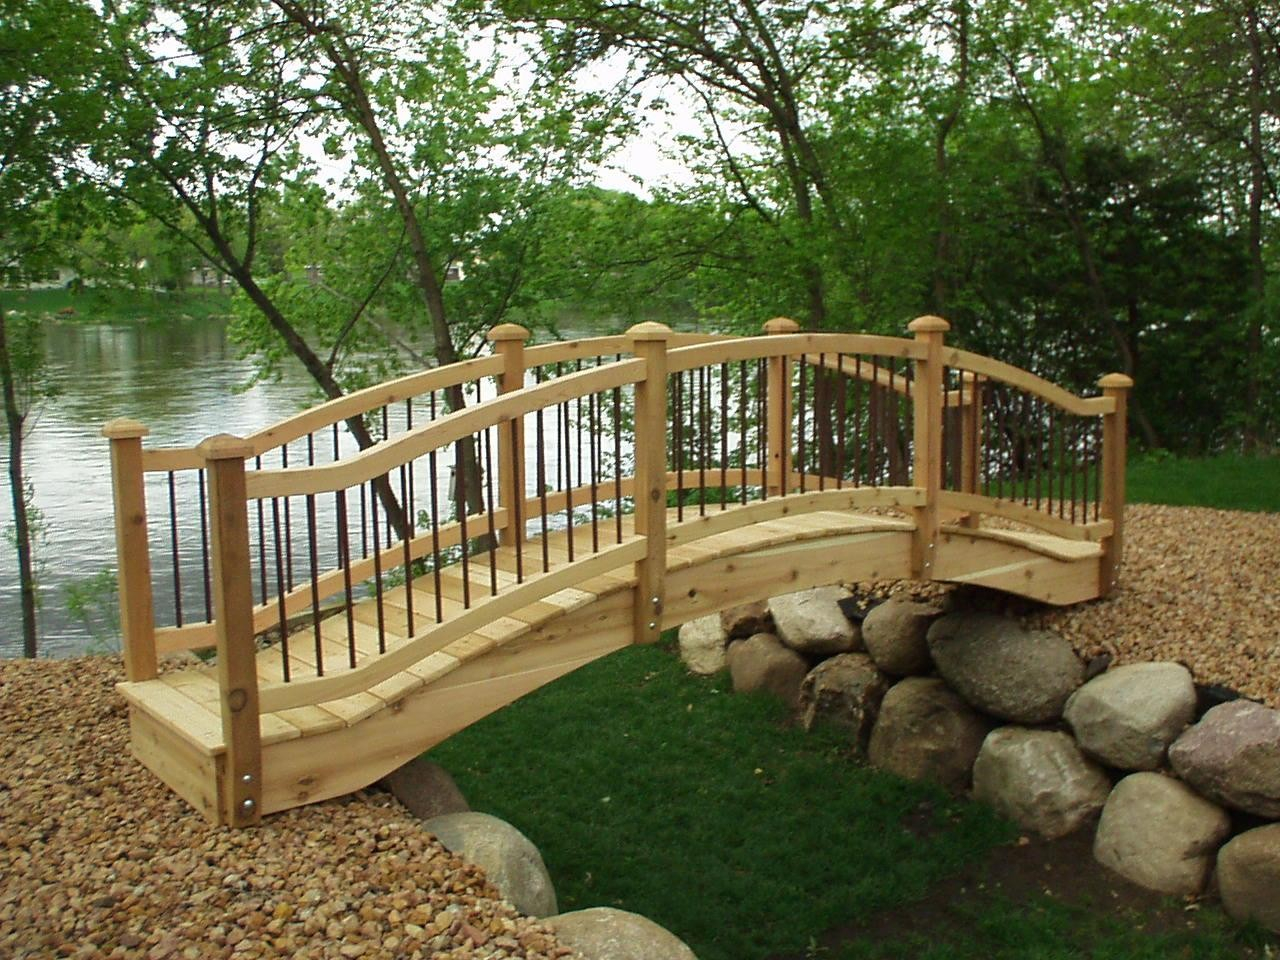 Garden Bridge Plans Home Decor Landscape Design Garden Ideas regarding Backyard Bridge Ideas